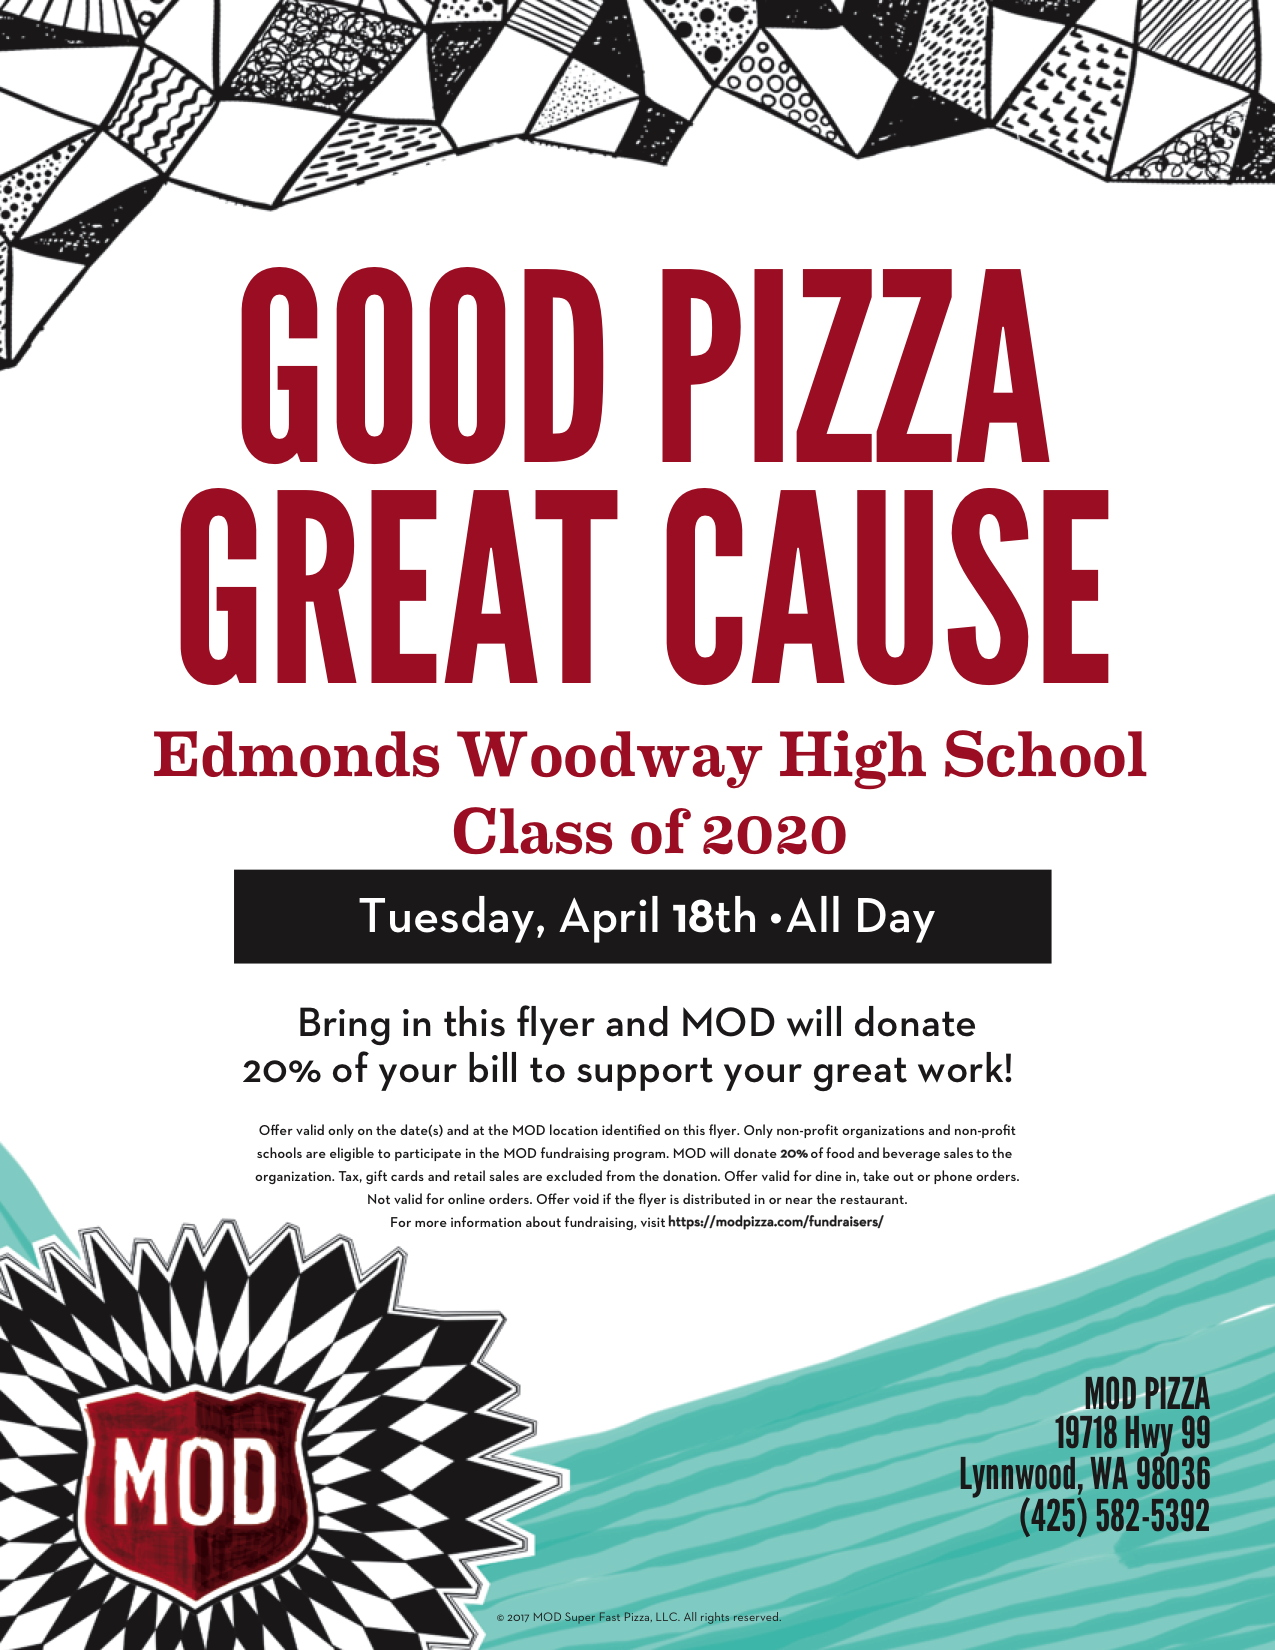 Eat At Mod Pizza April 18 And Help Ewhs Class Of